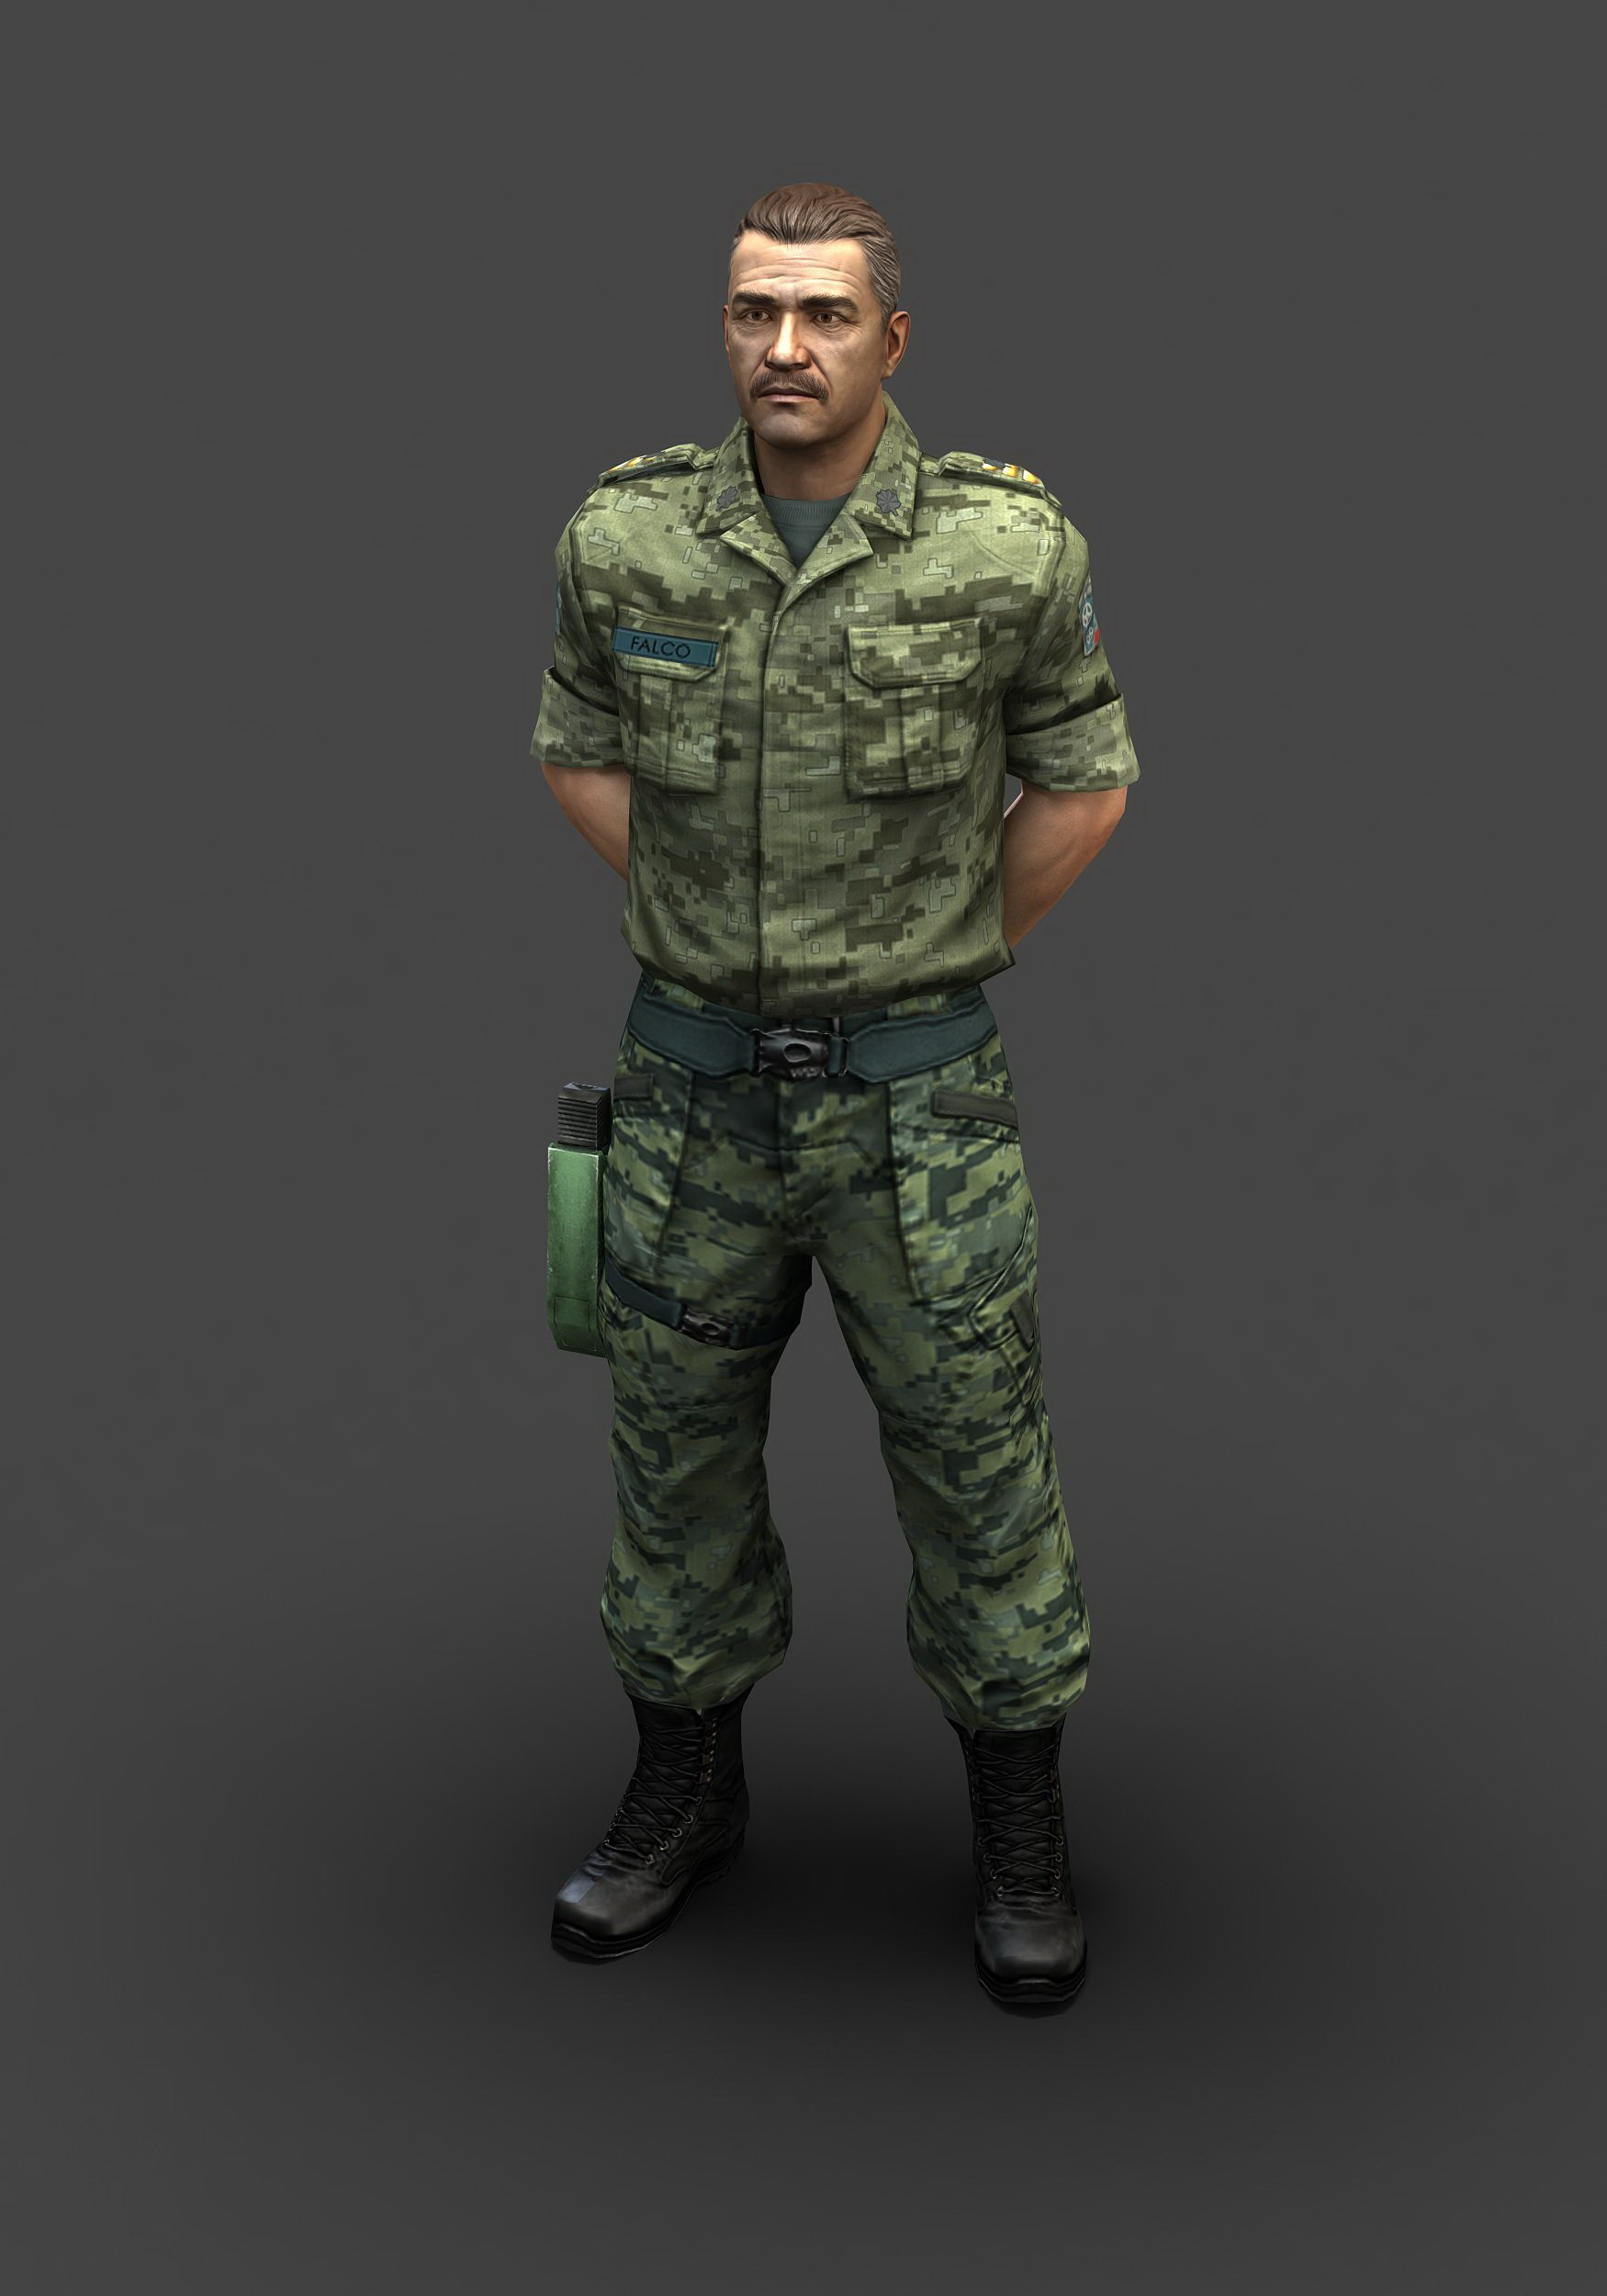 NationStates • View topic - Your Nations Military Uniform?